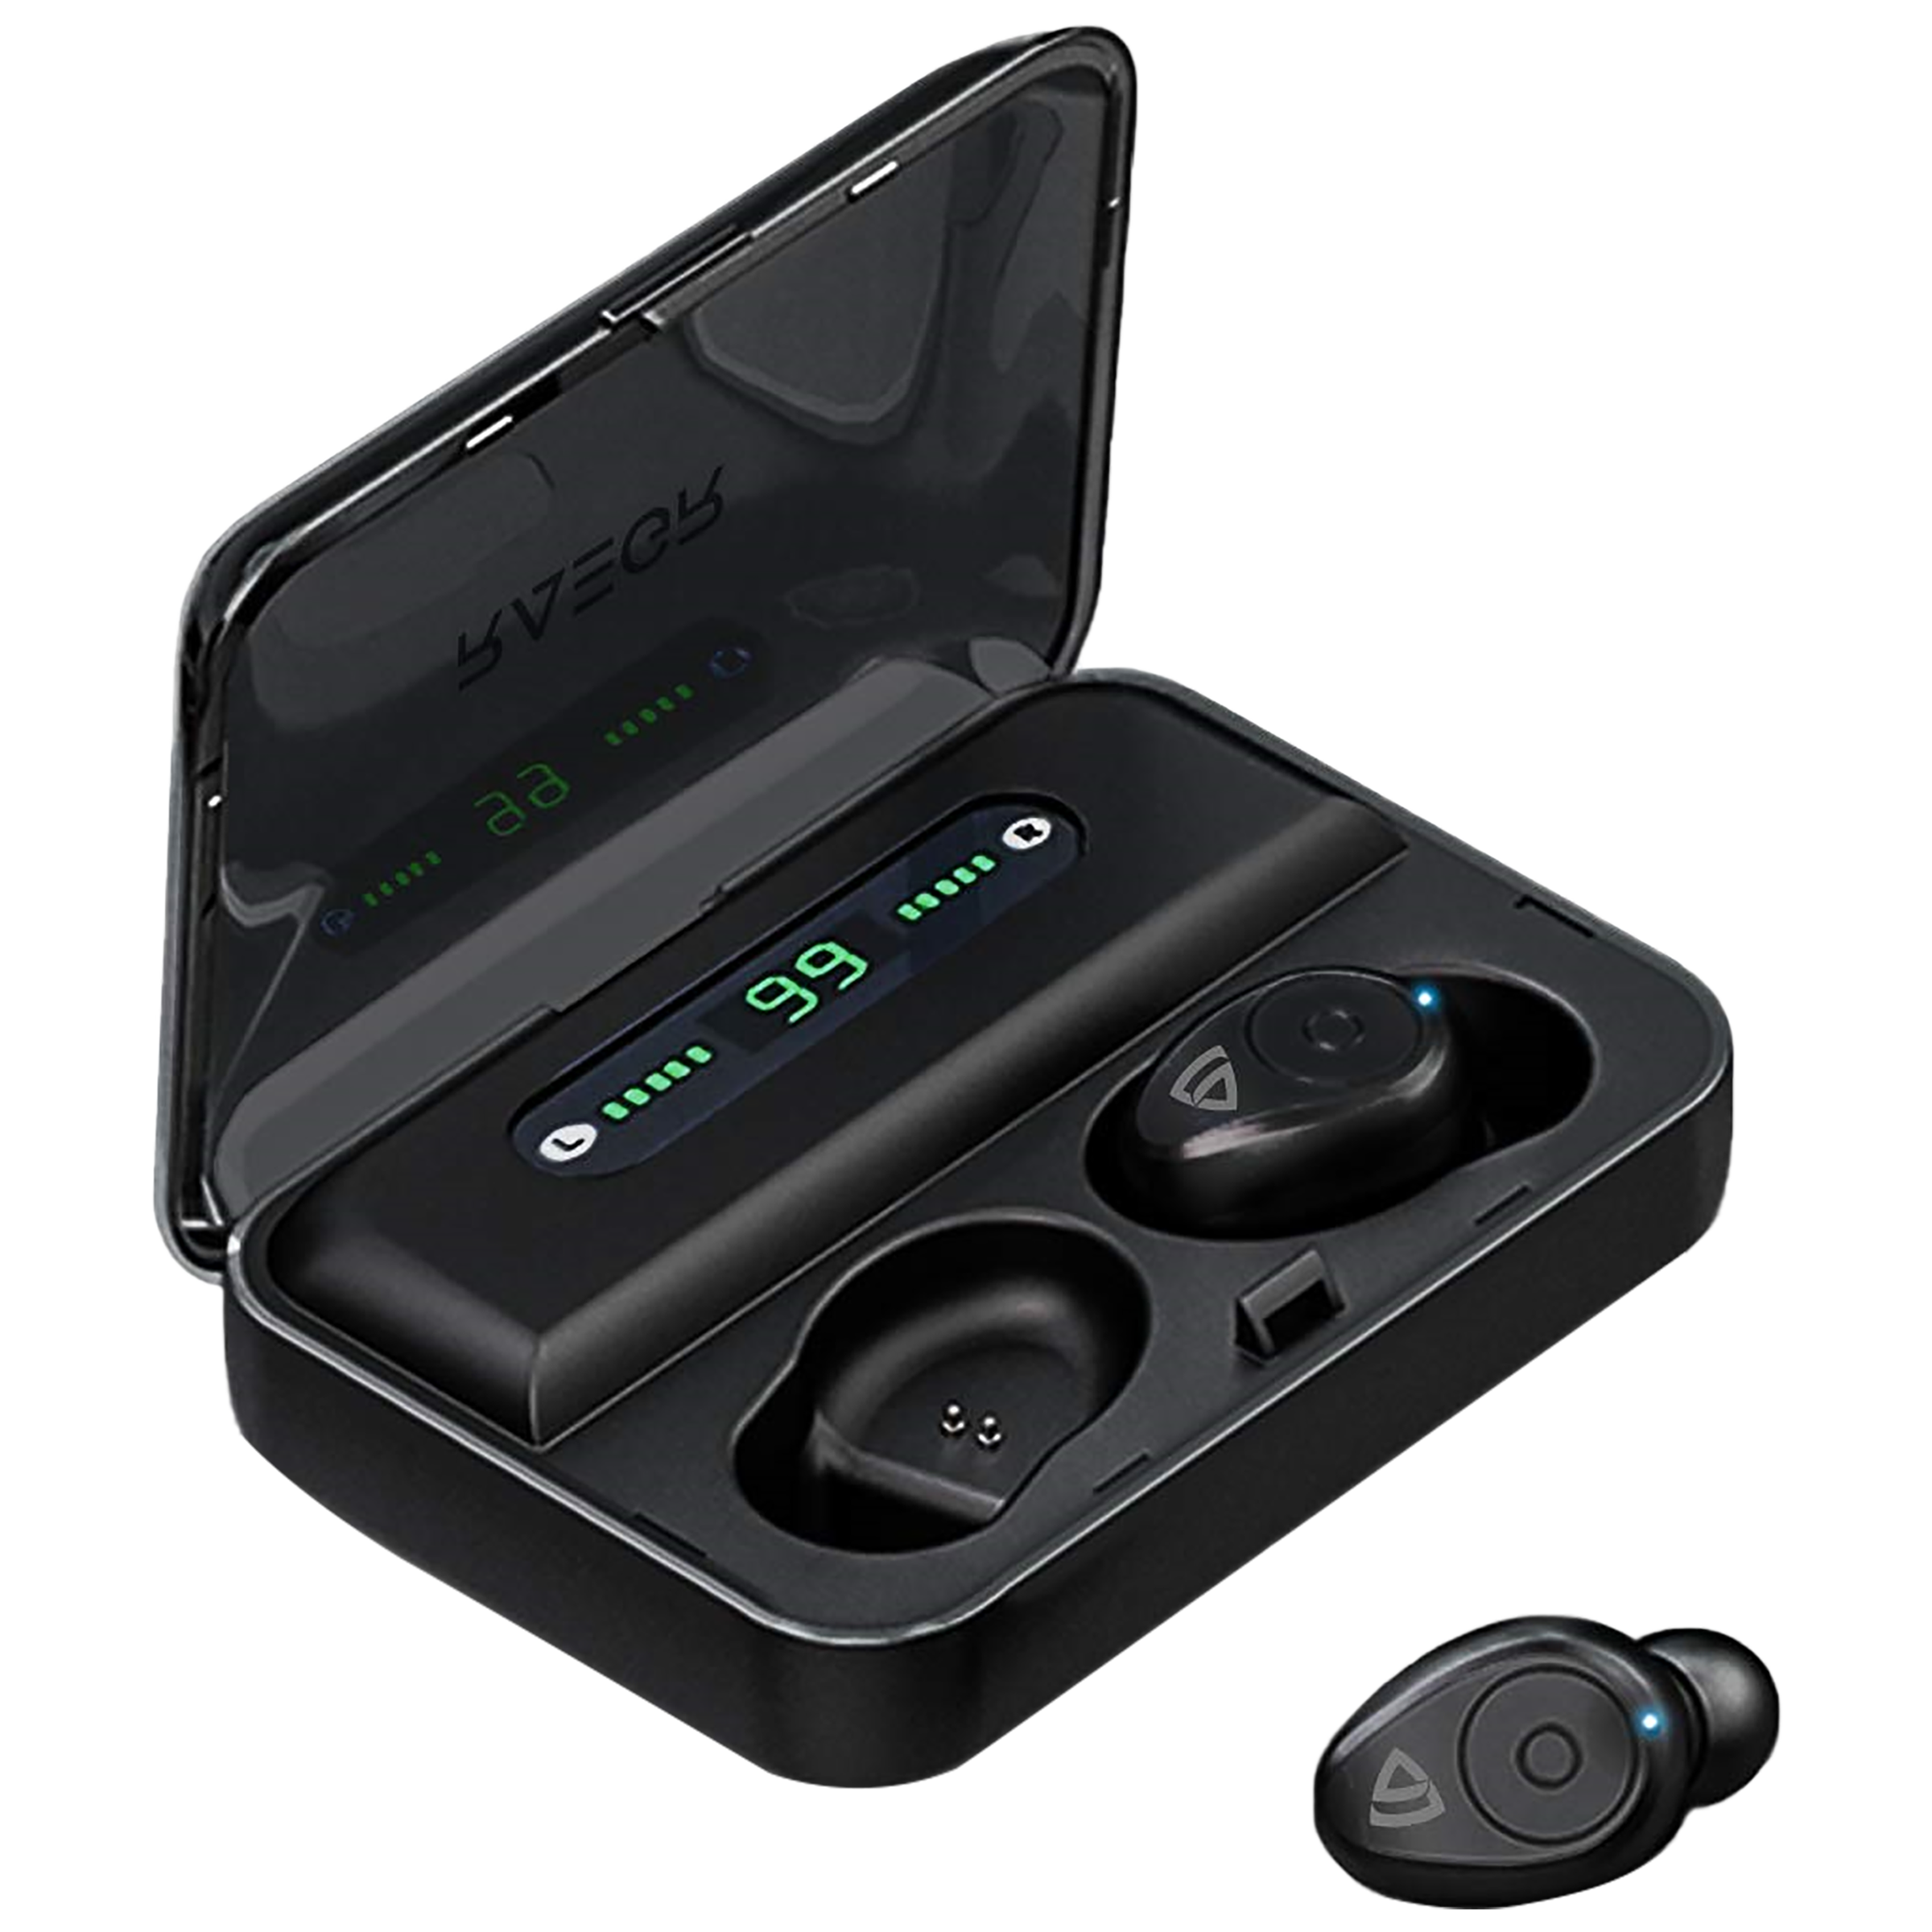 RAEGR AirShots 500 In-Ear Active Noise Cancellation Truly Wireless Earbuds With Mic (Bluetooth 4.0, RG10050, Black)_1